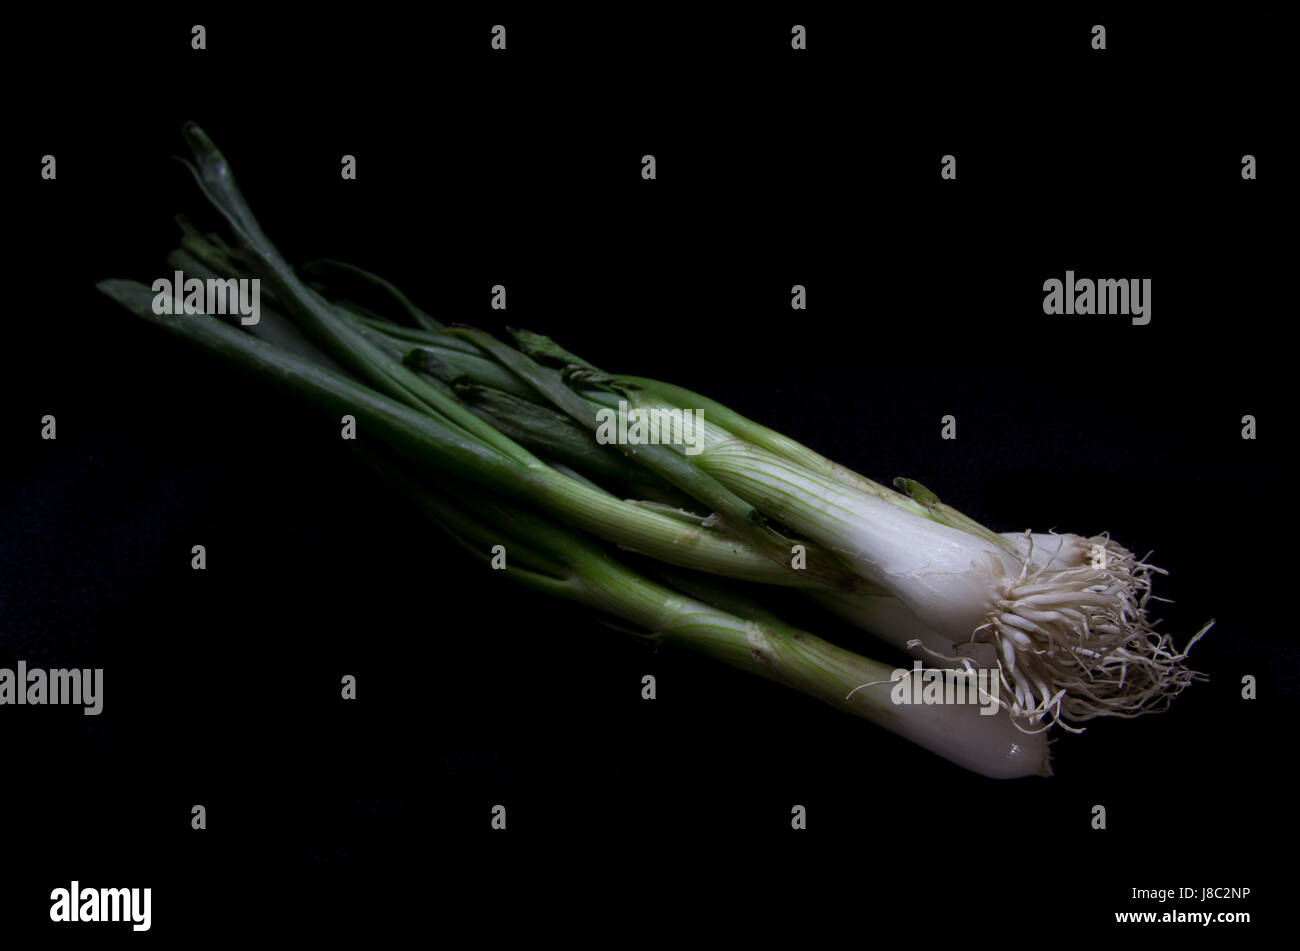 Spring onions - Stock Image